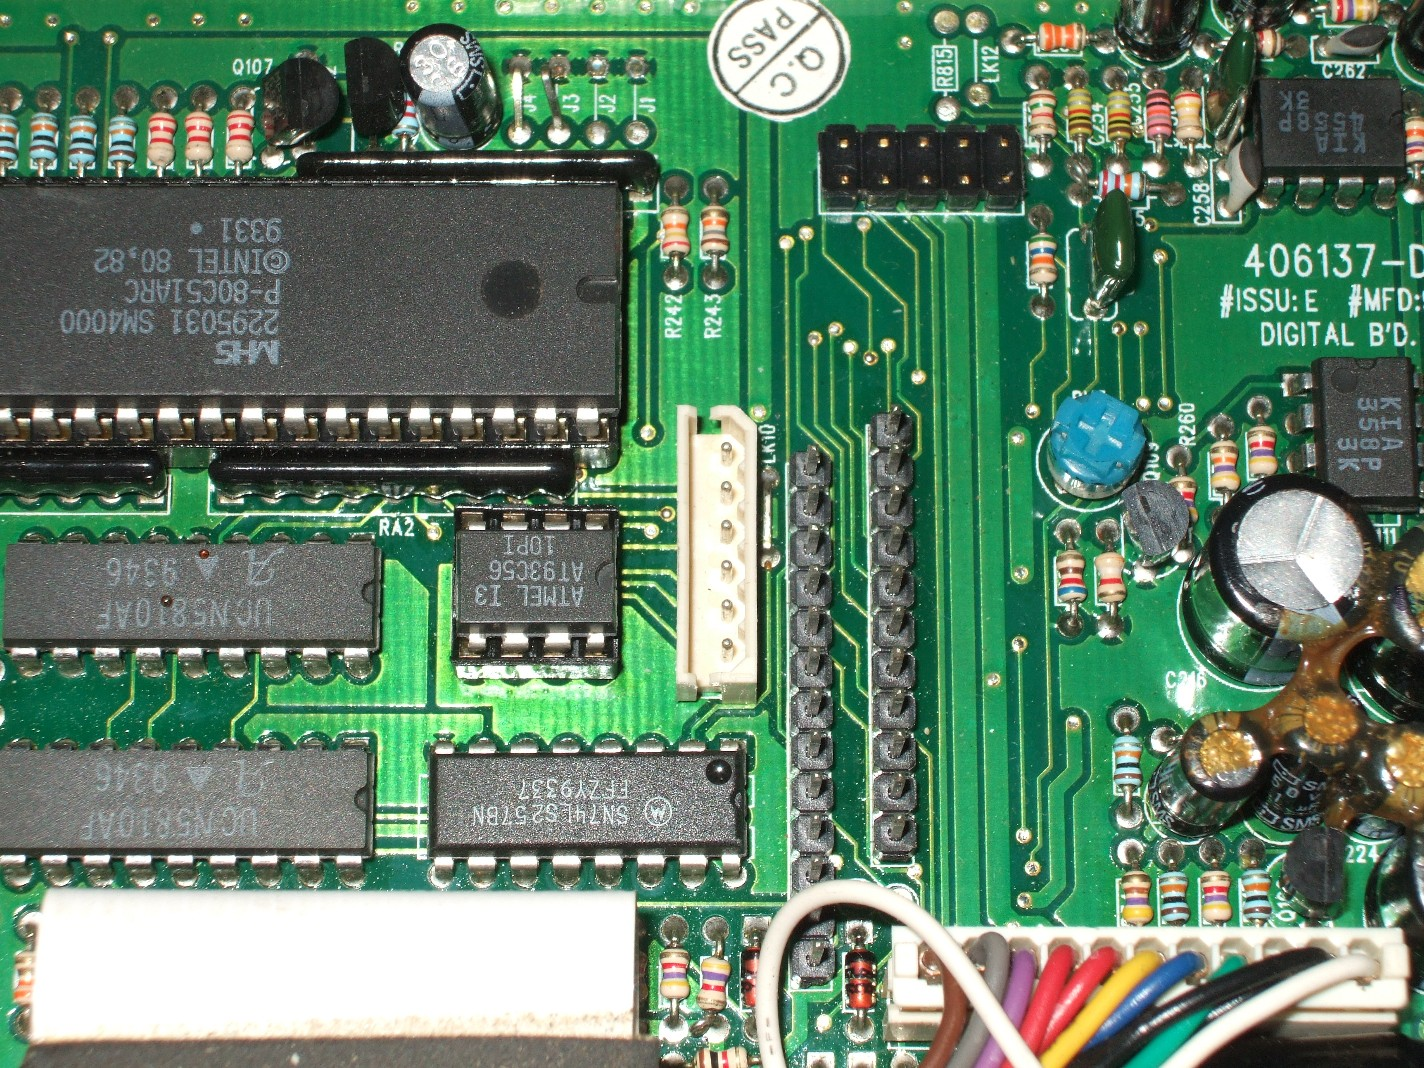 Ge Monogram Maxon Microphone Wiring Diagram The Programming Header In Center Of Main Pcb It Is White Connector